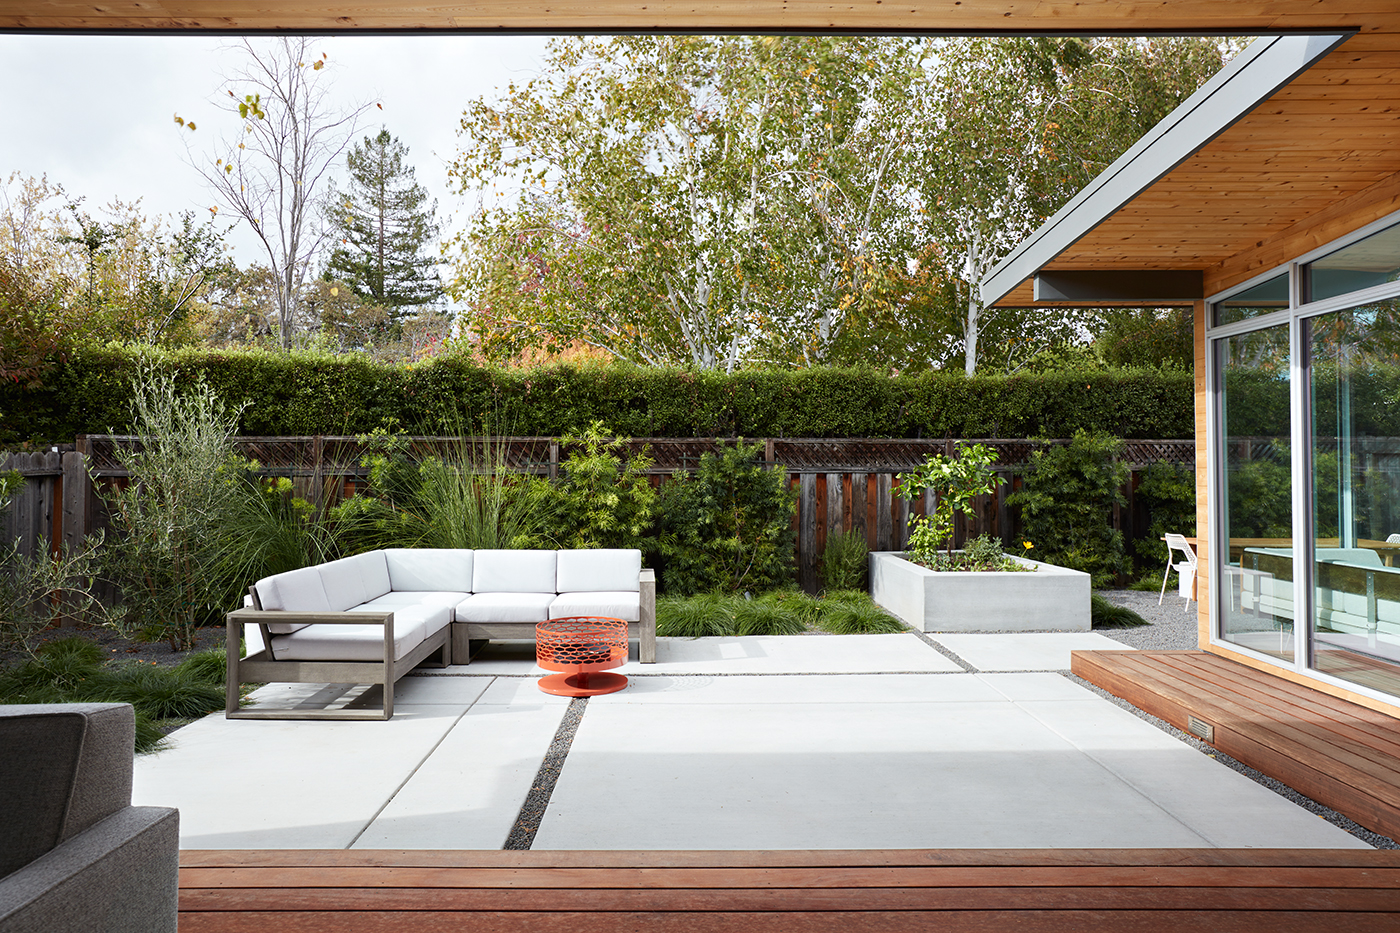 6 Midcentury Modern Landscaping Ideas for a Classic-Chic Look | Hunker